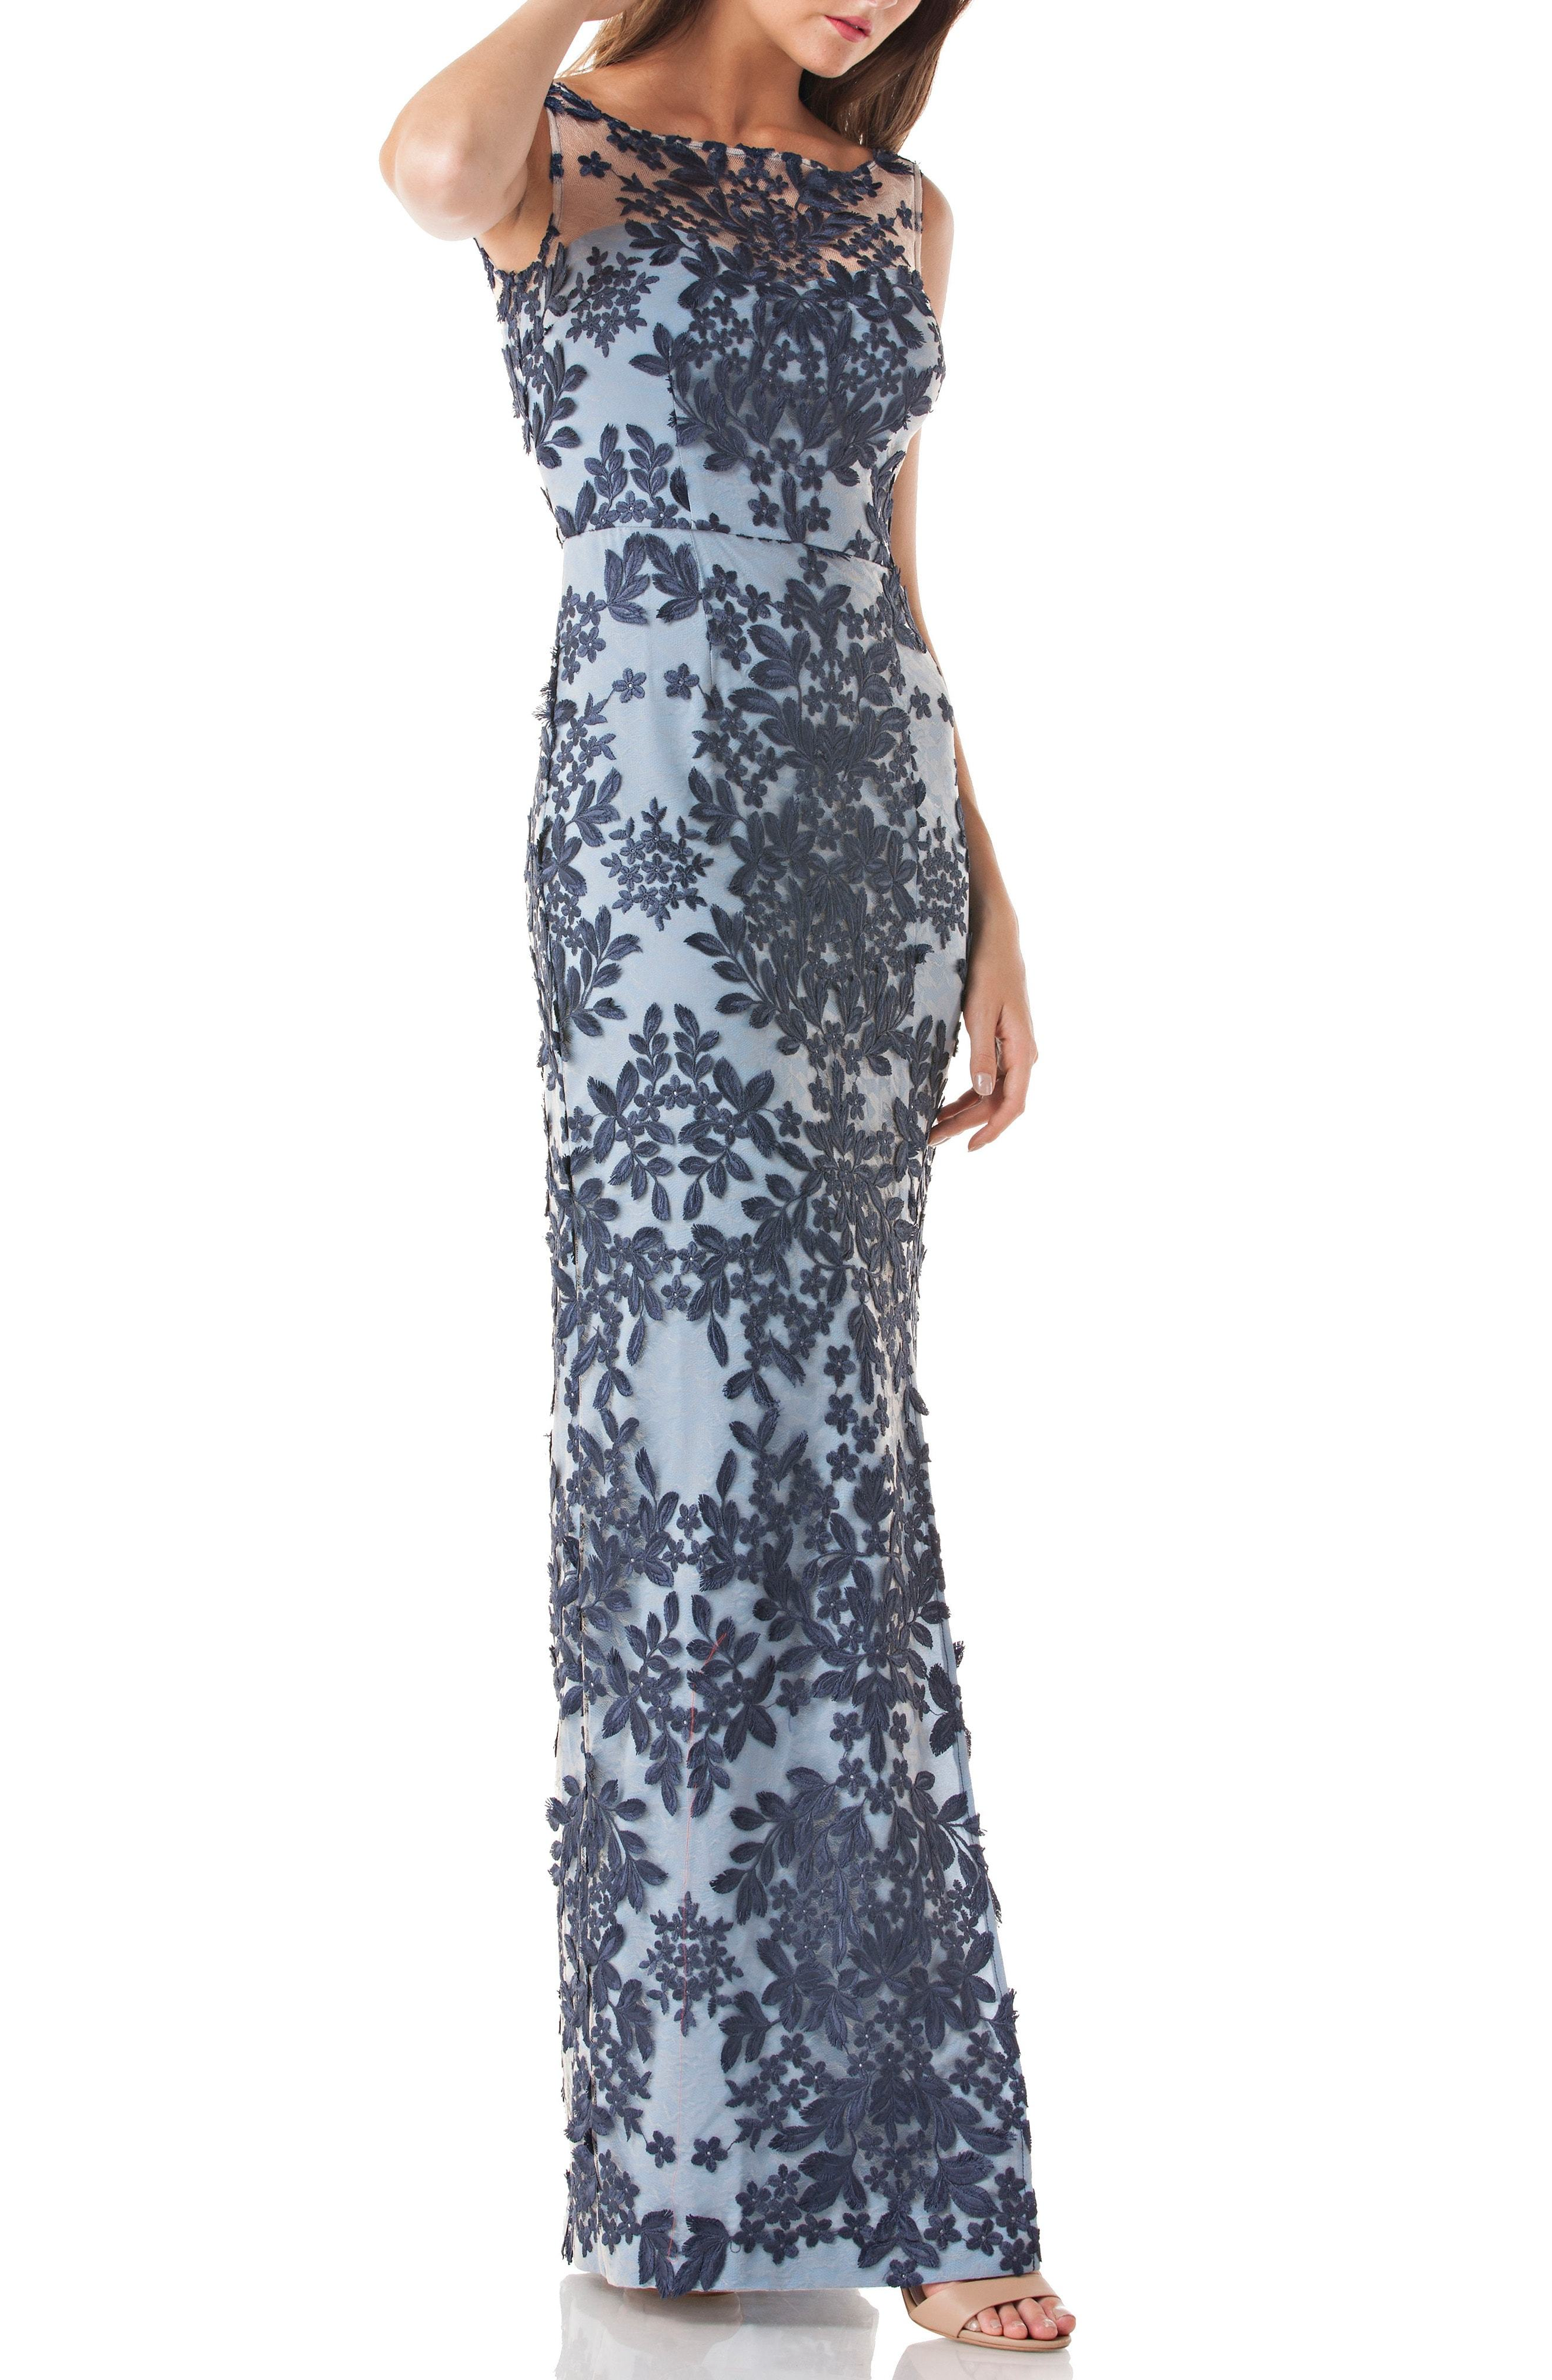 8e23a28a7d0 ... Navy Floral Evening Dresses JS Collections Leaf Embroidered Gown